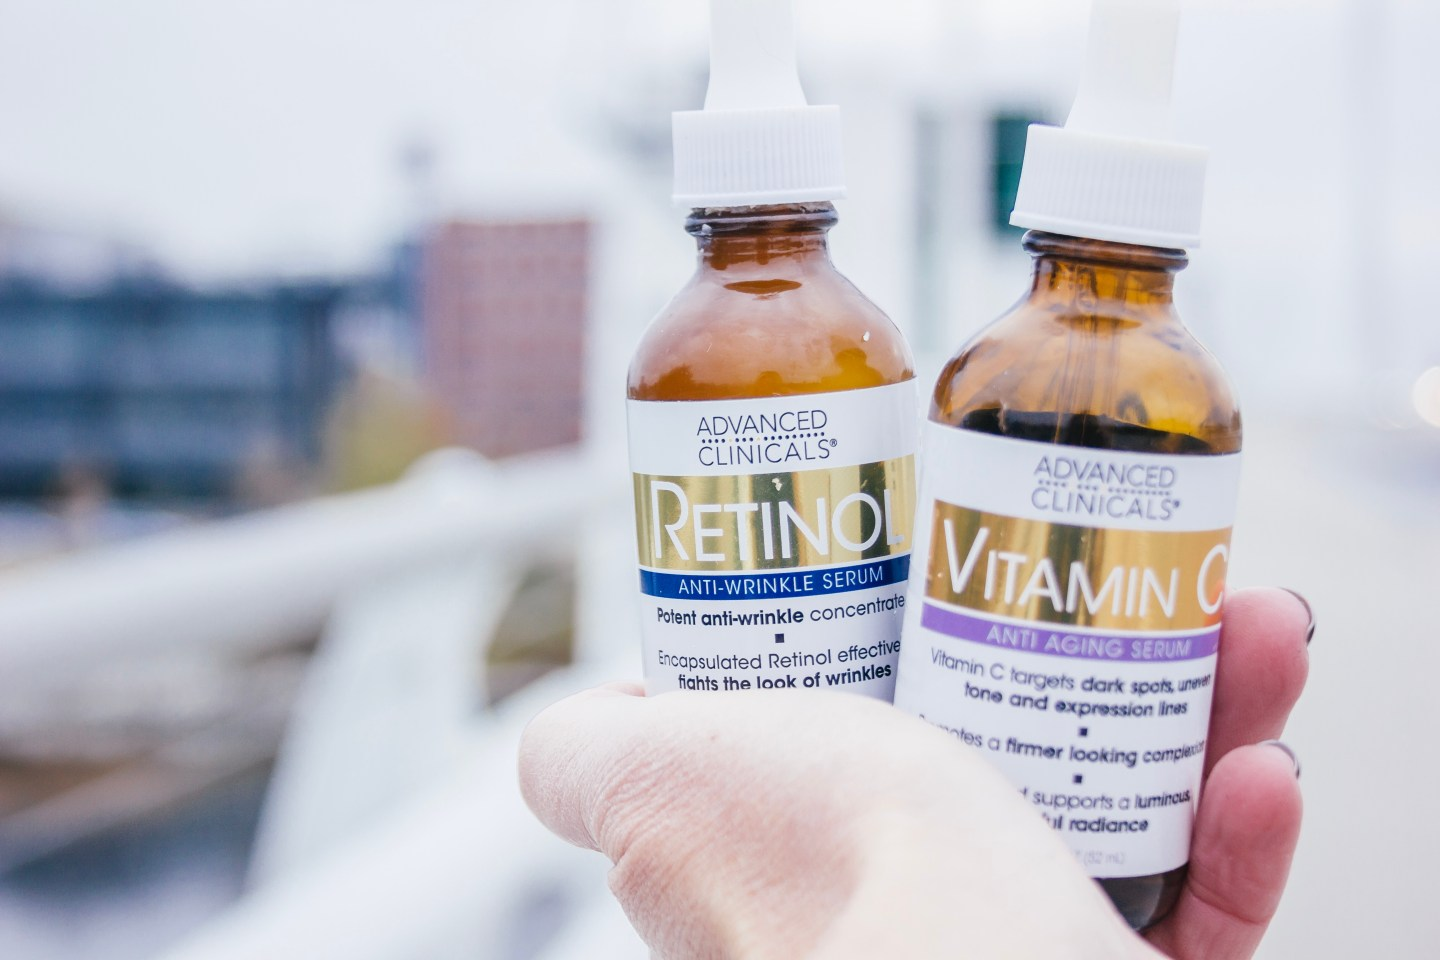 Advanced Clinicals Retinol Serum and Vitamin C Serum